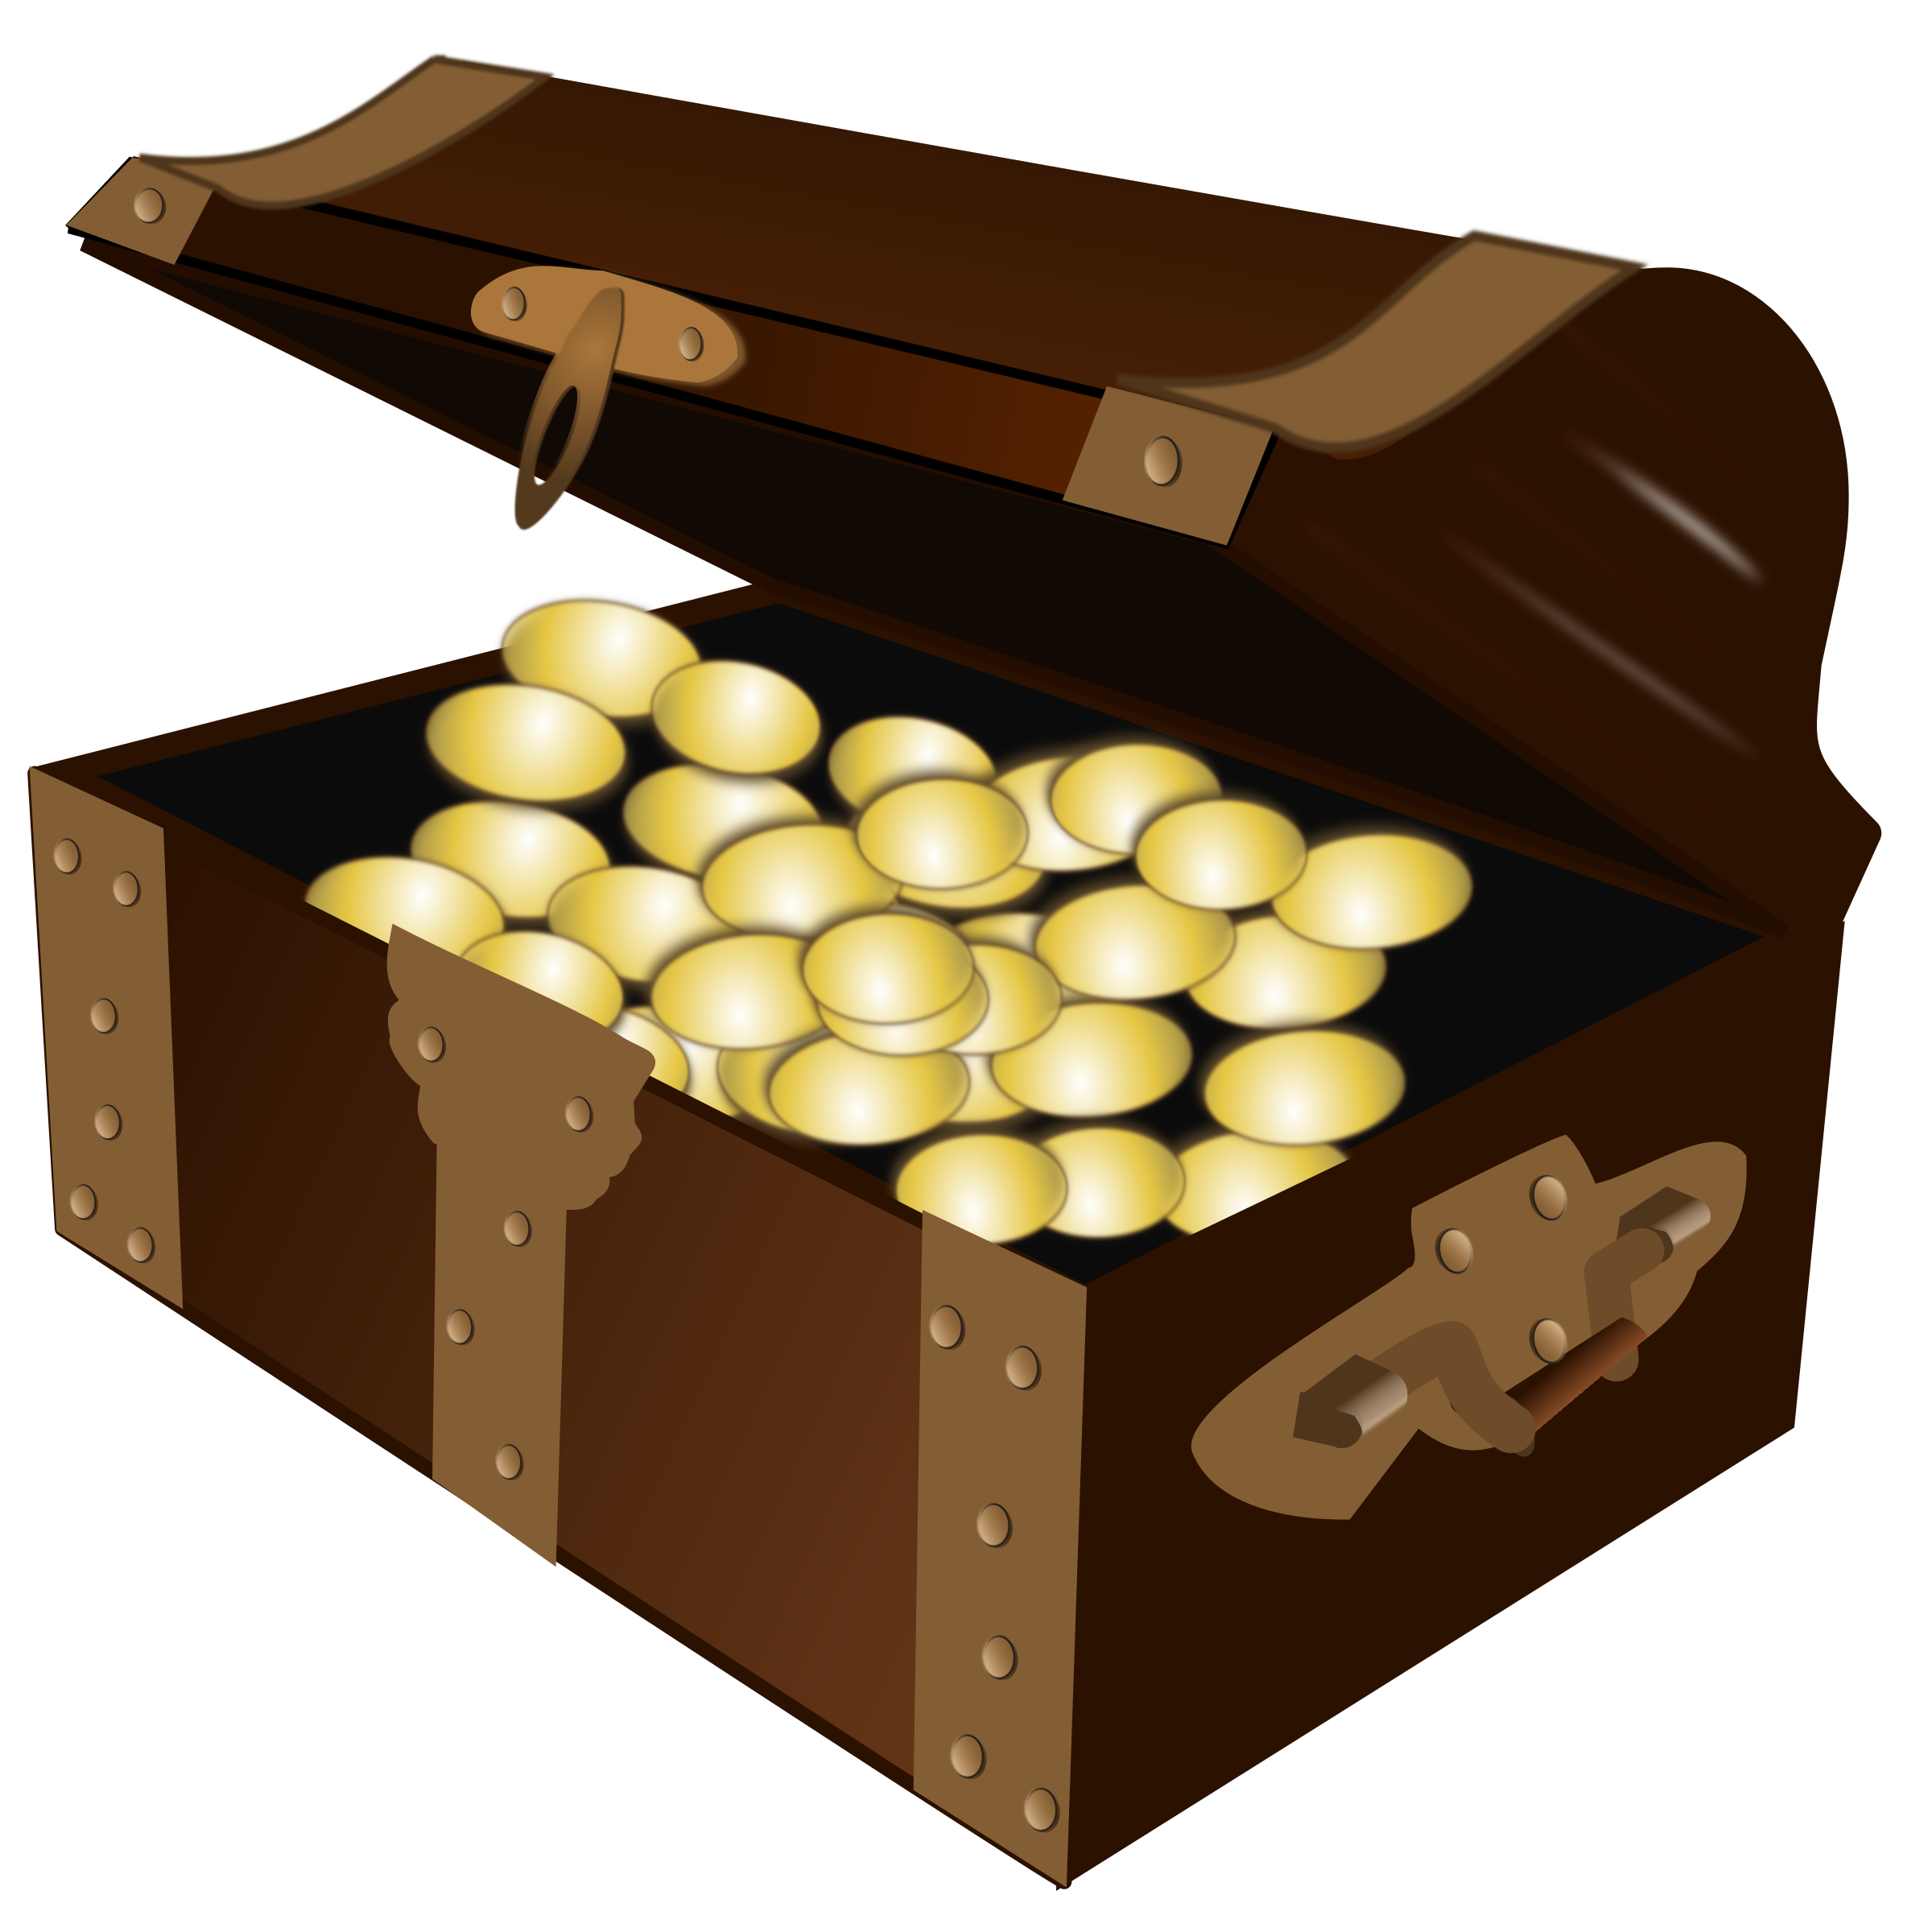 Treasure Chest by wjase